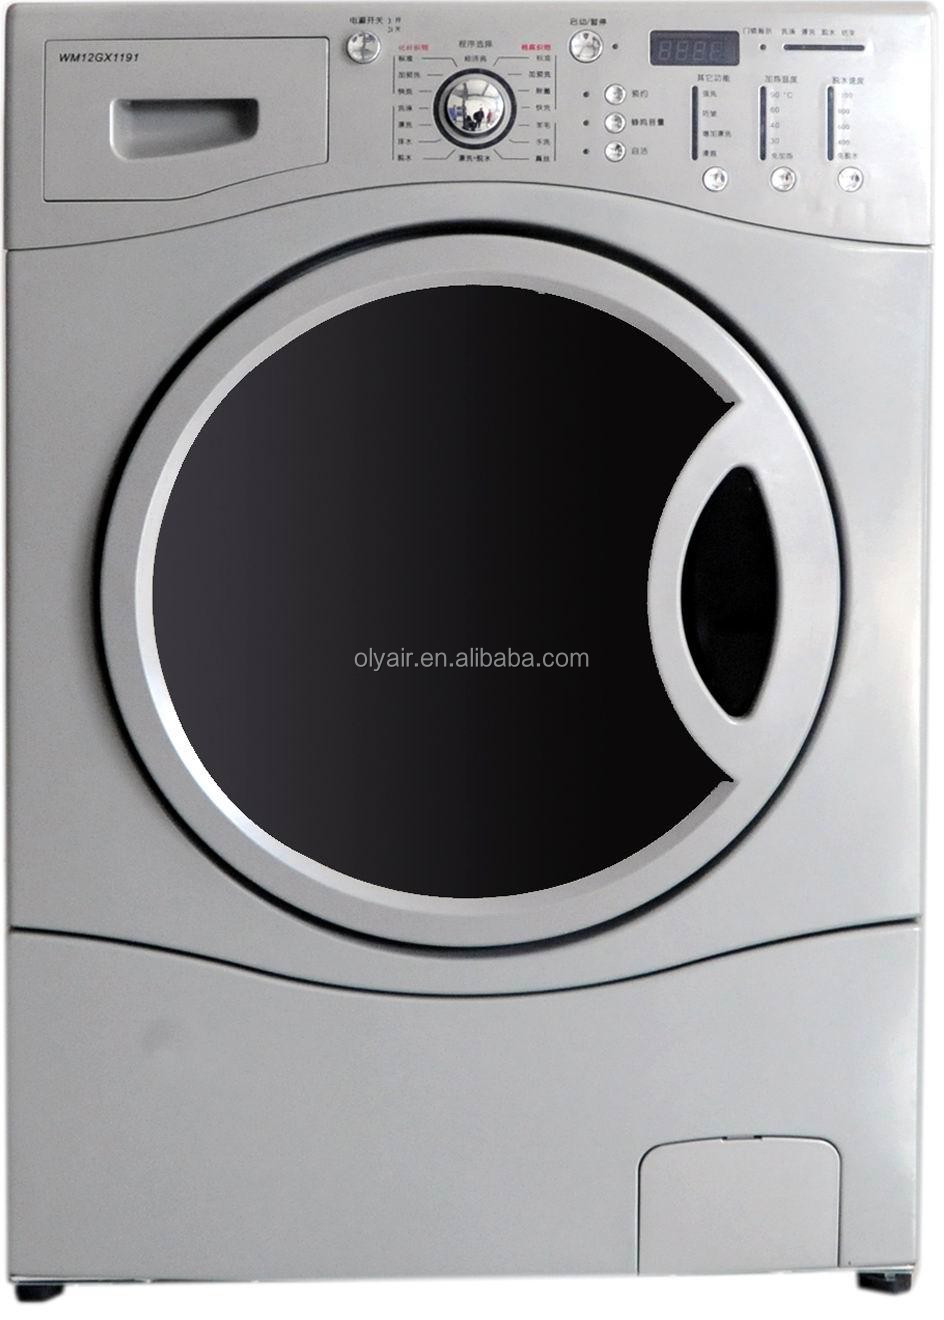 Brand new 12KG front loading washing machine with LED display